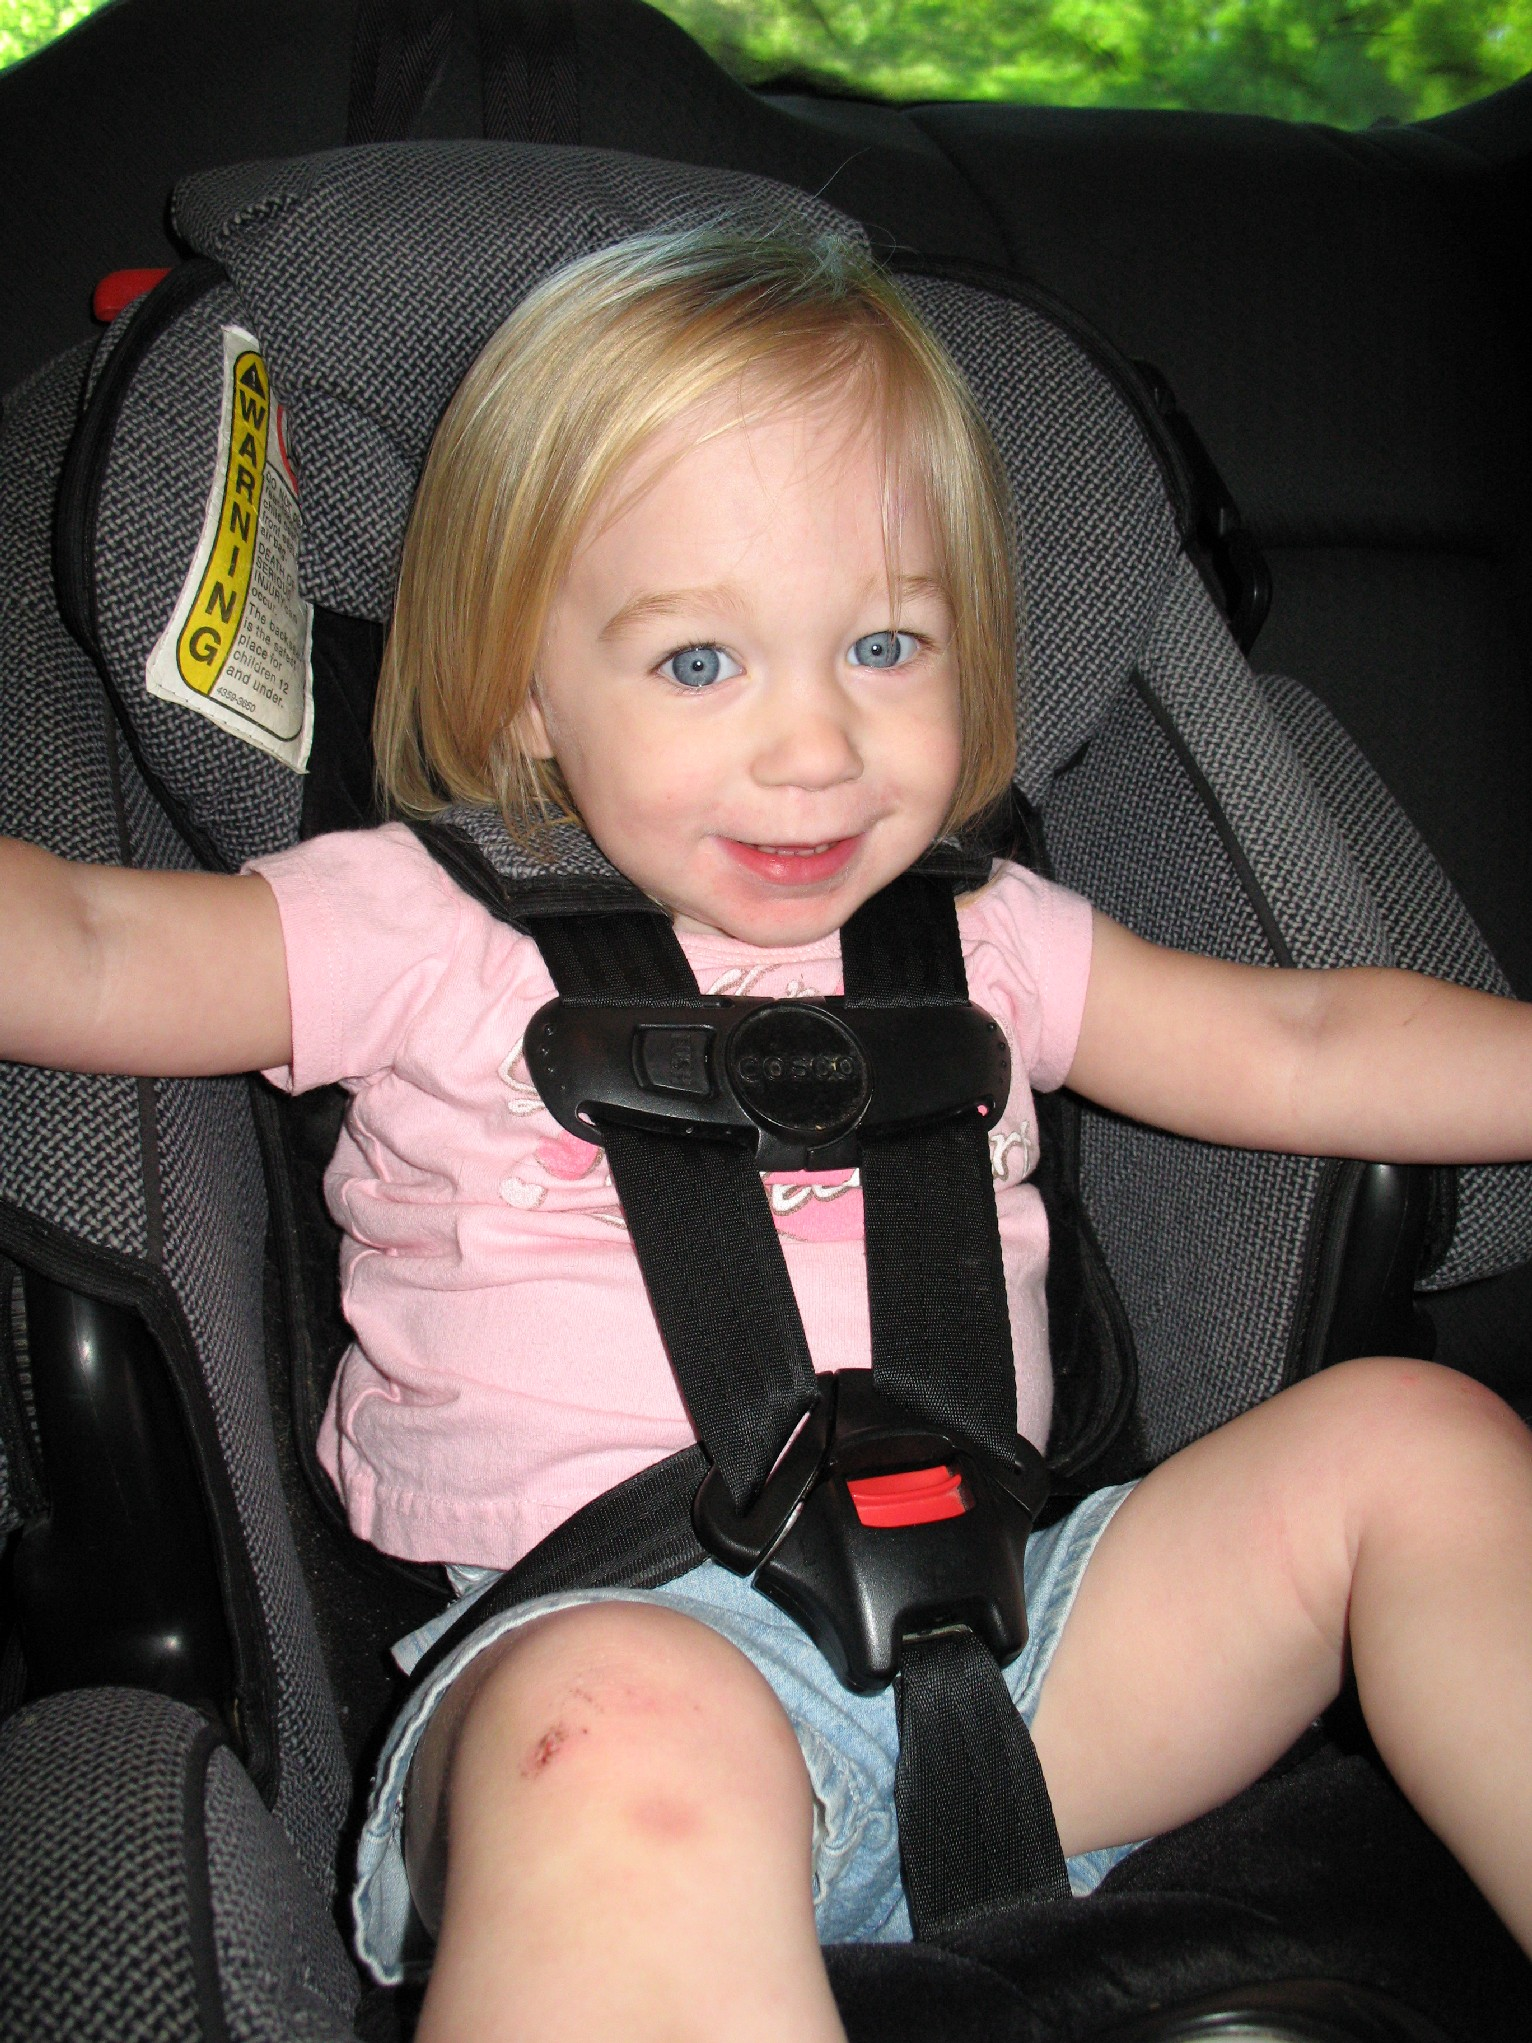 Current Data Makes It Clear Child Safety Seats And Booster